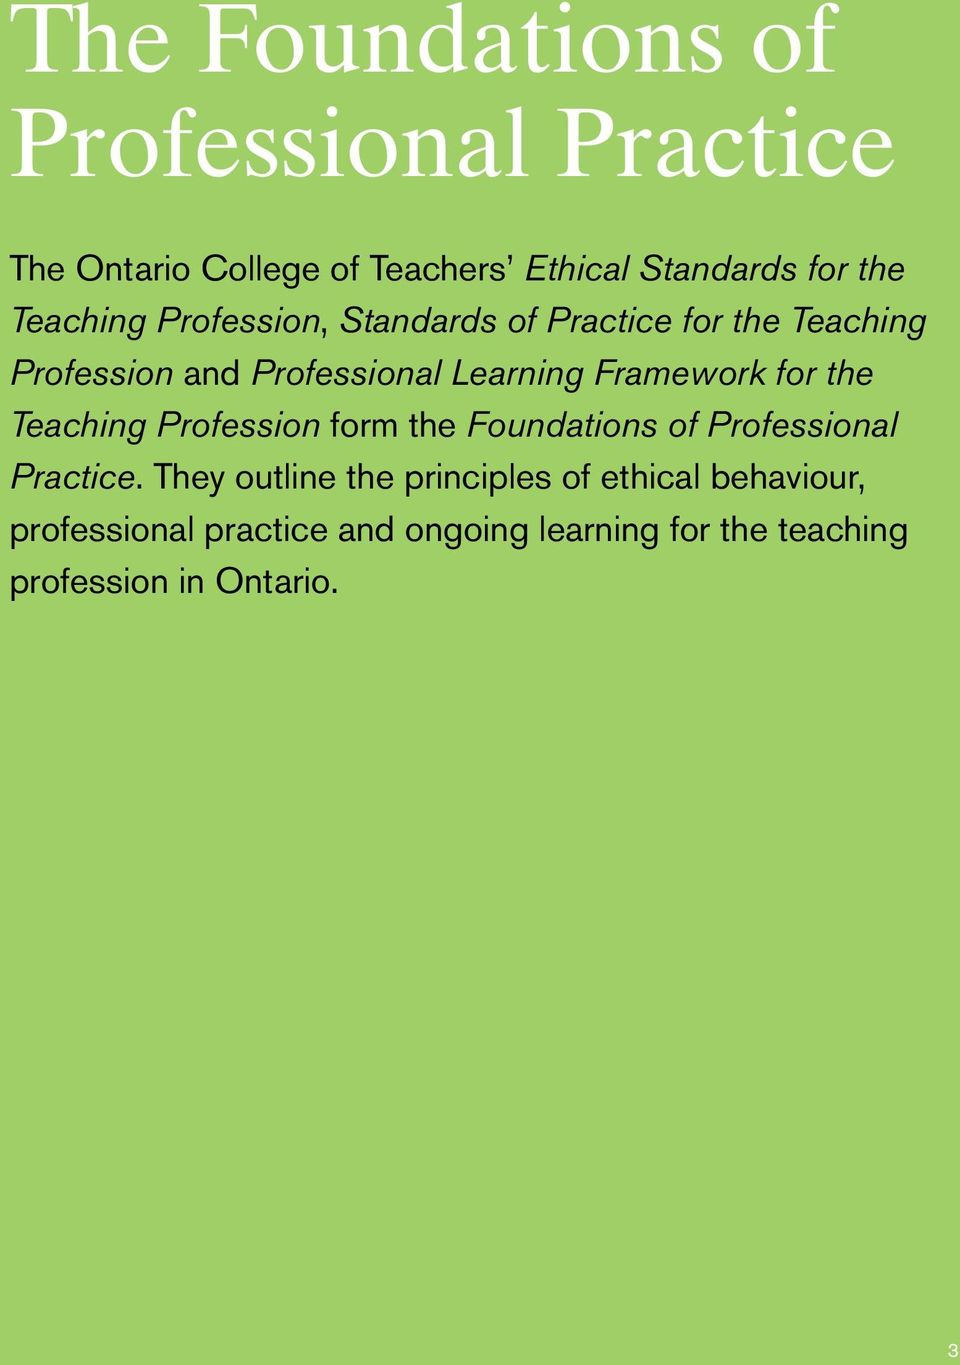 Framework for the Teaching Profession form the Foundations of Professional Practice.